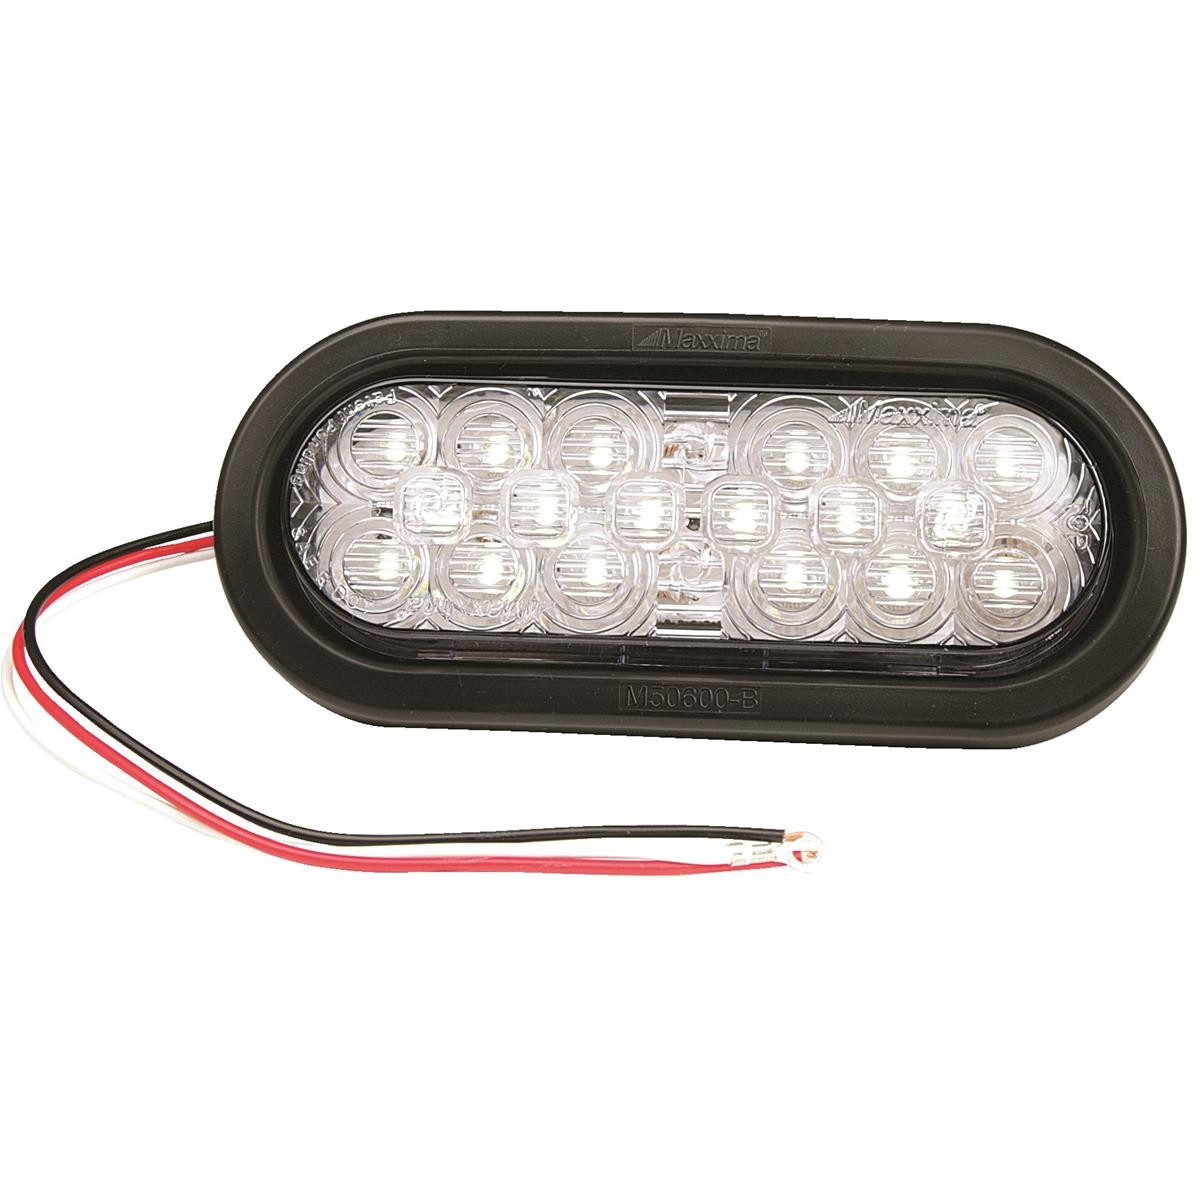 MAXXIMA Oval LED Back Up Light with Rubber Grommet and Pigtail White LEDs